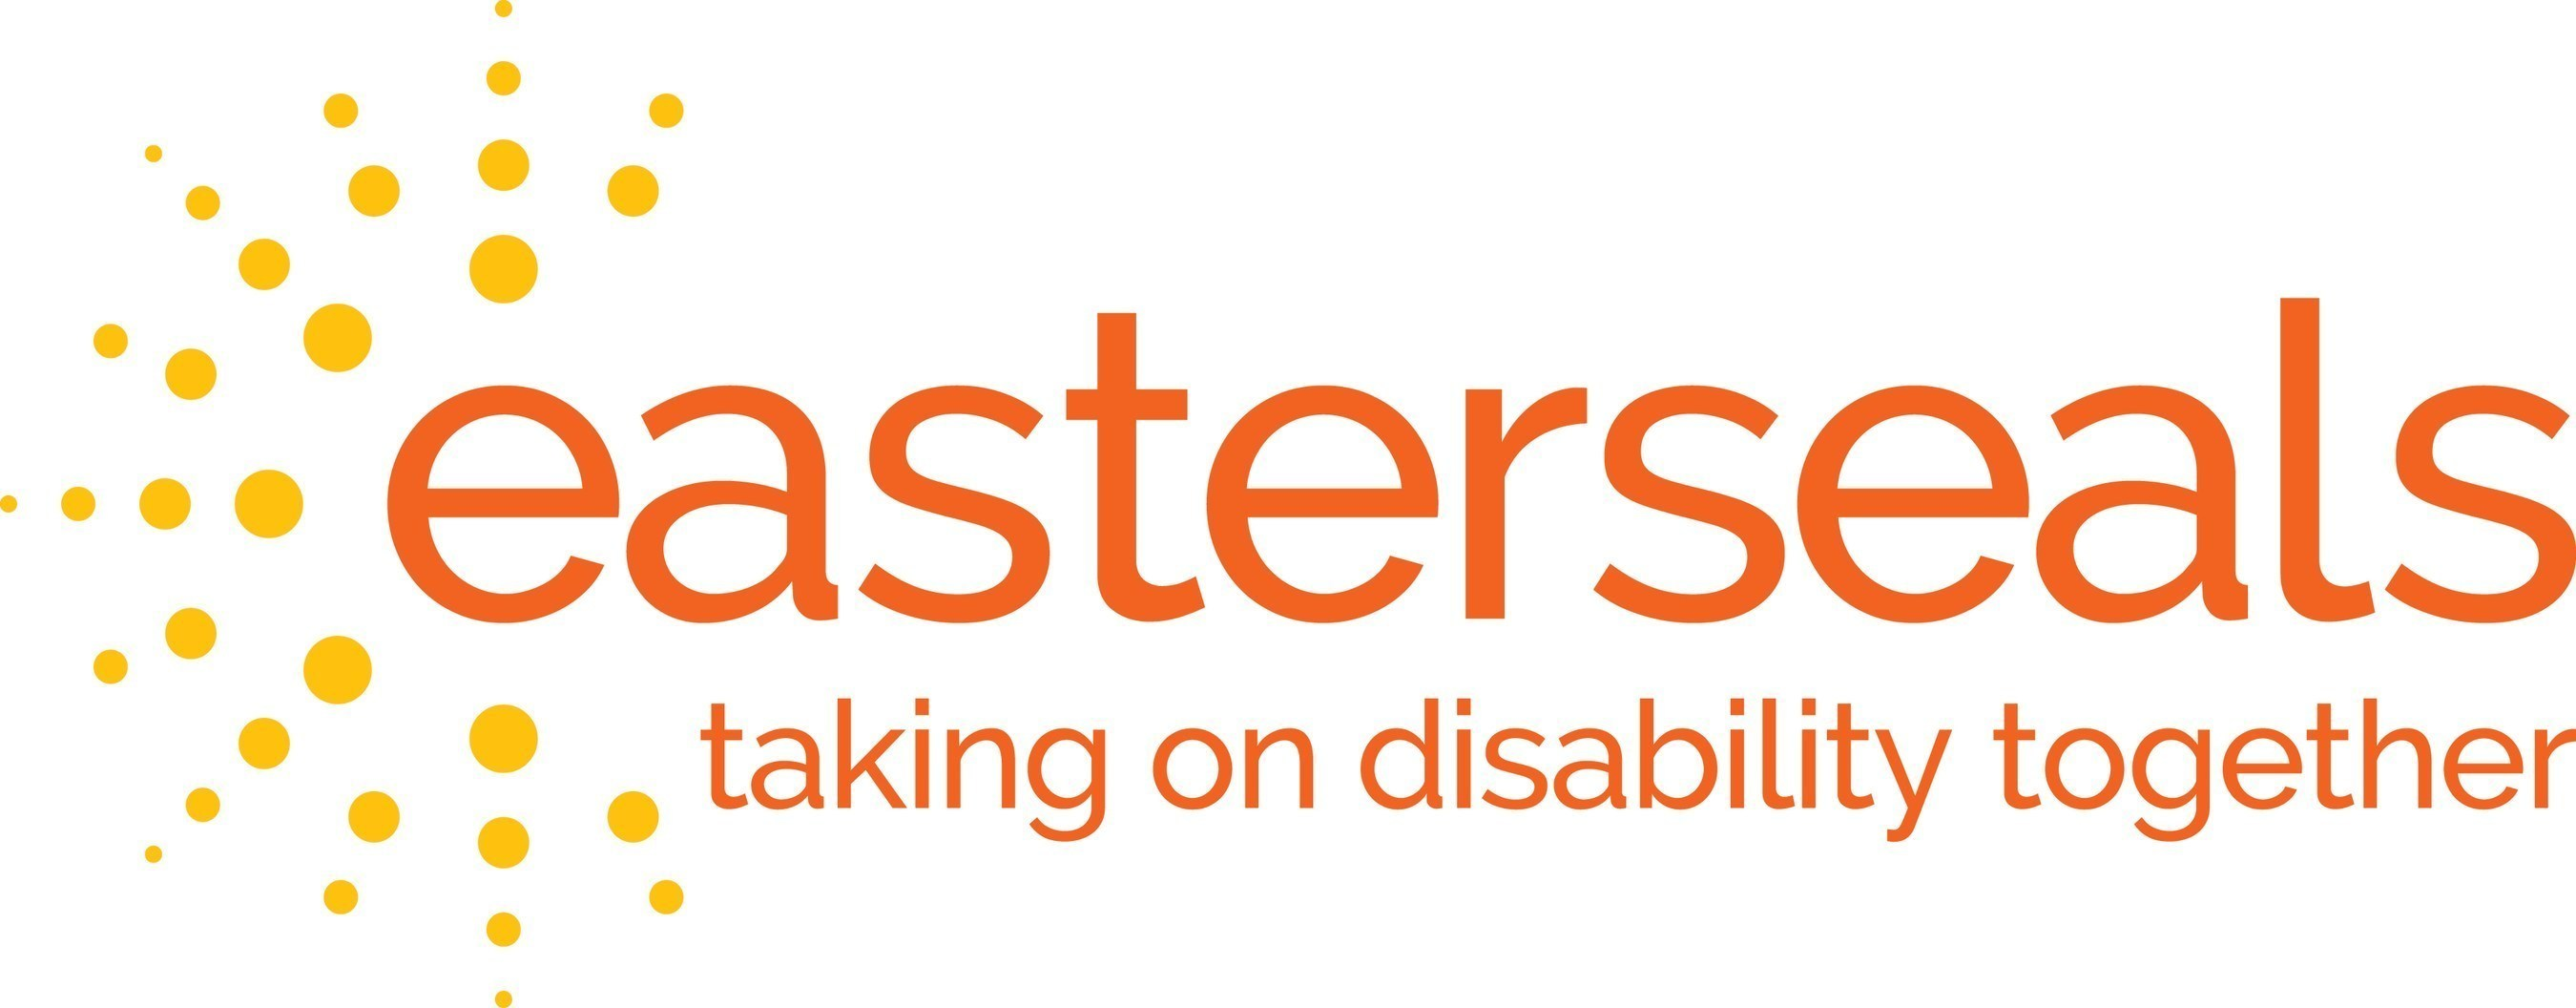 New Autism Documentary Joins Forces With Easterseals To Promote Inclusion For Families With Disabilities In Communities Nationwide